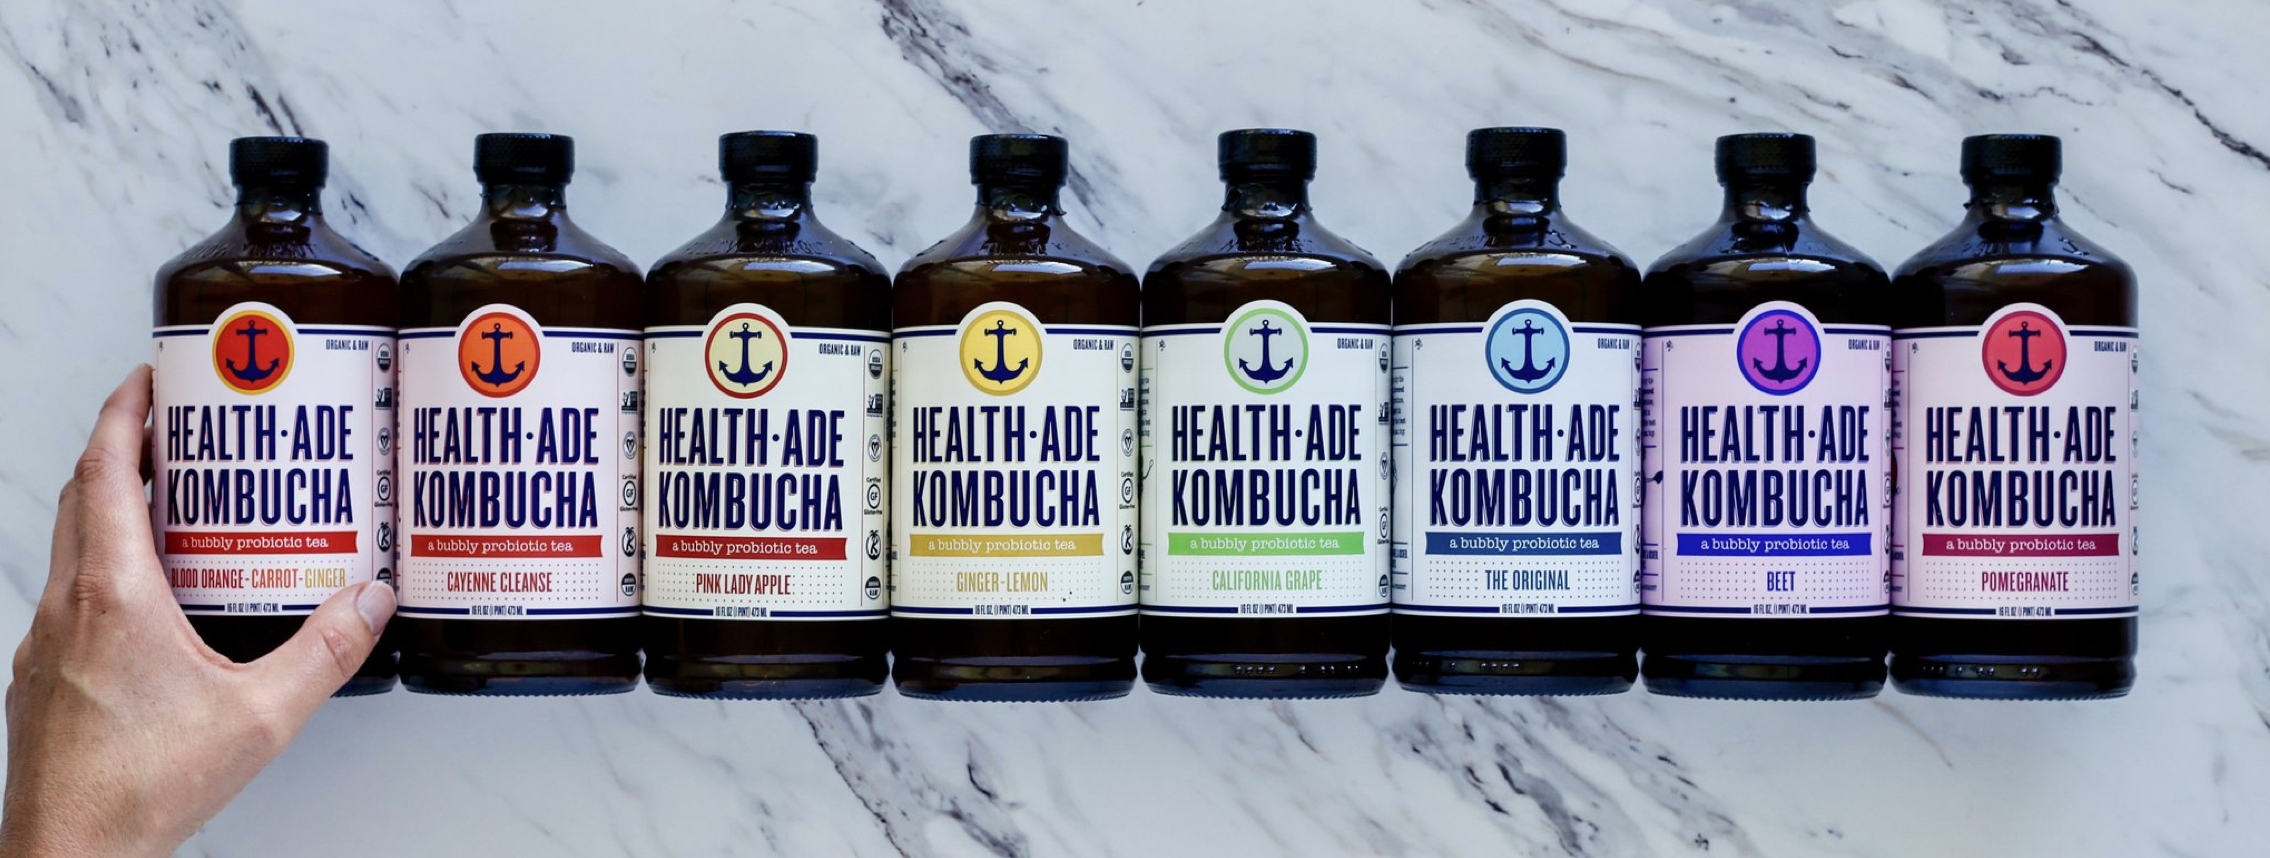 health+ade+kombucha, focus+on+local